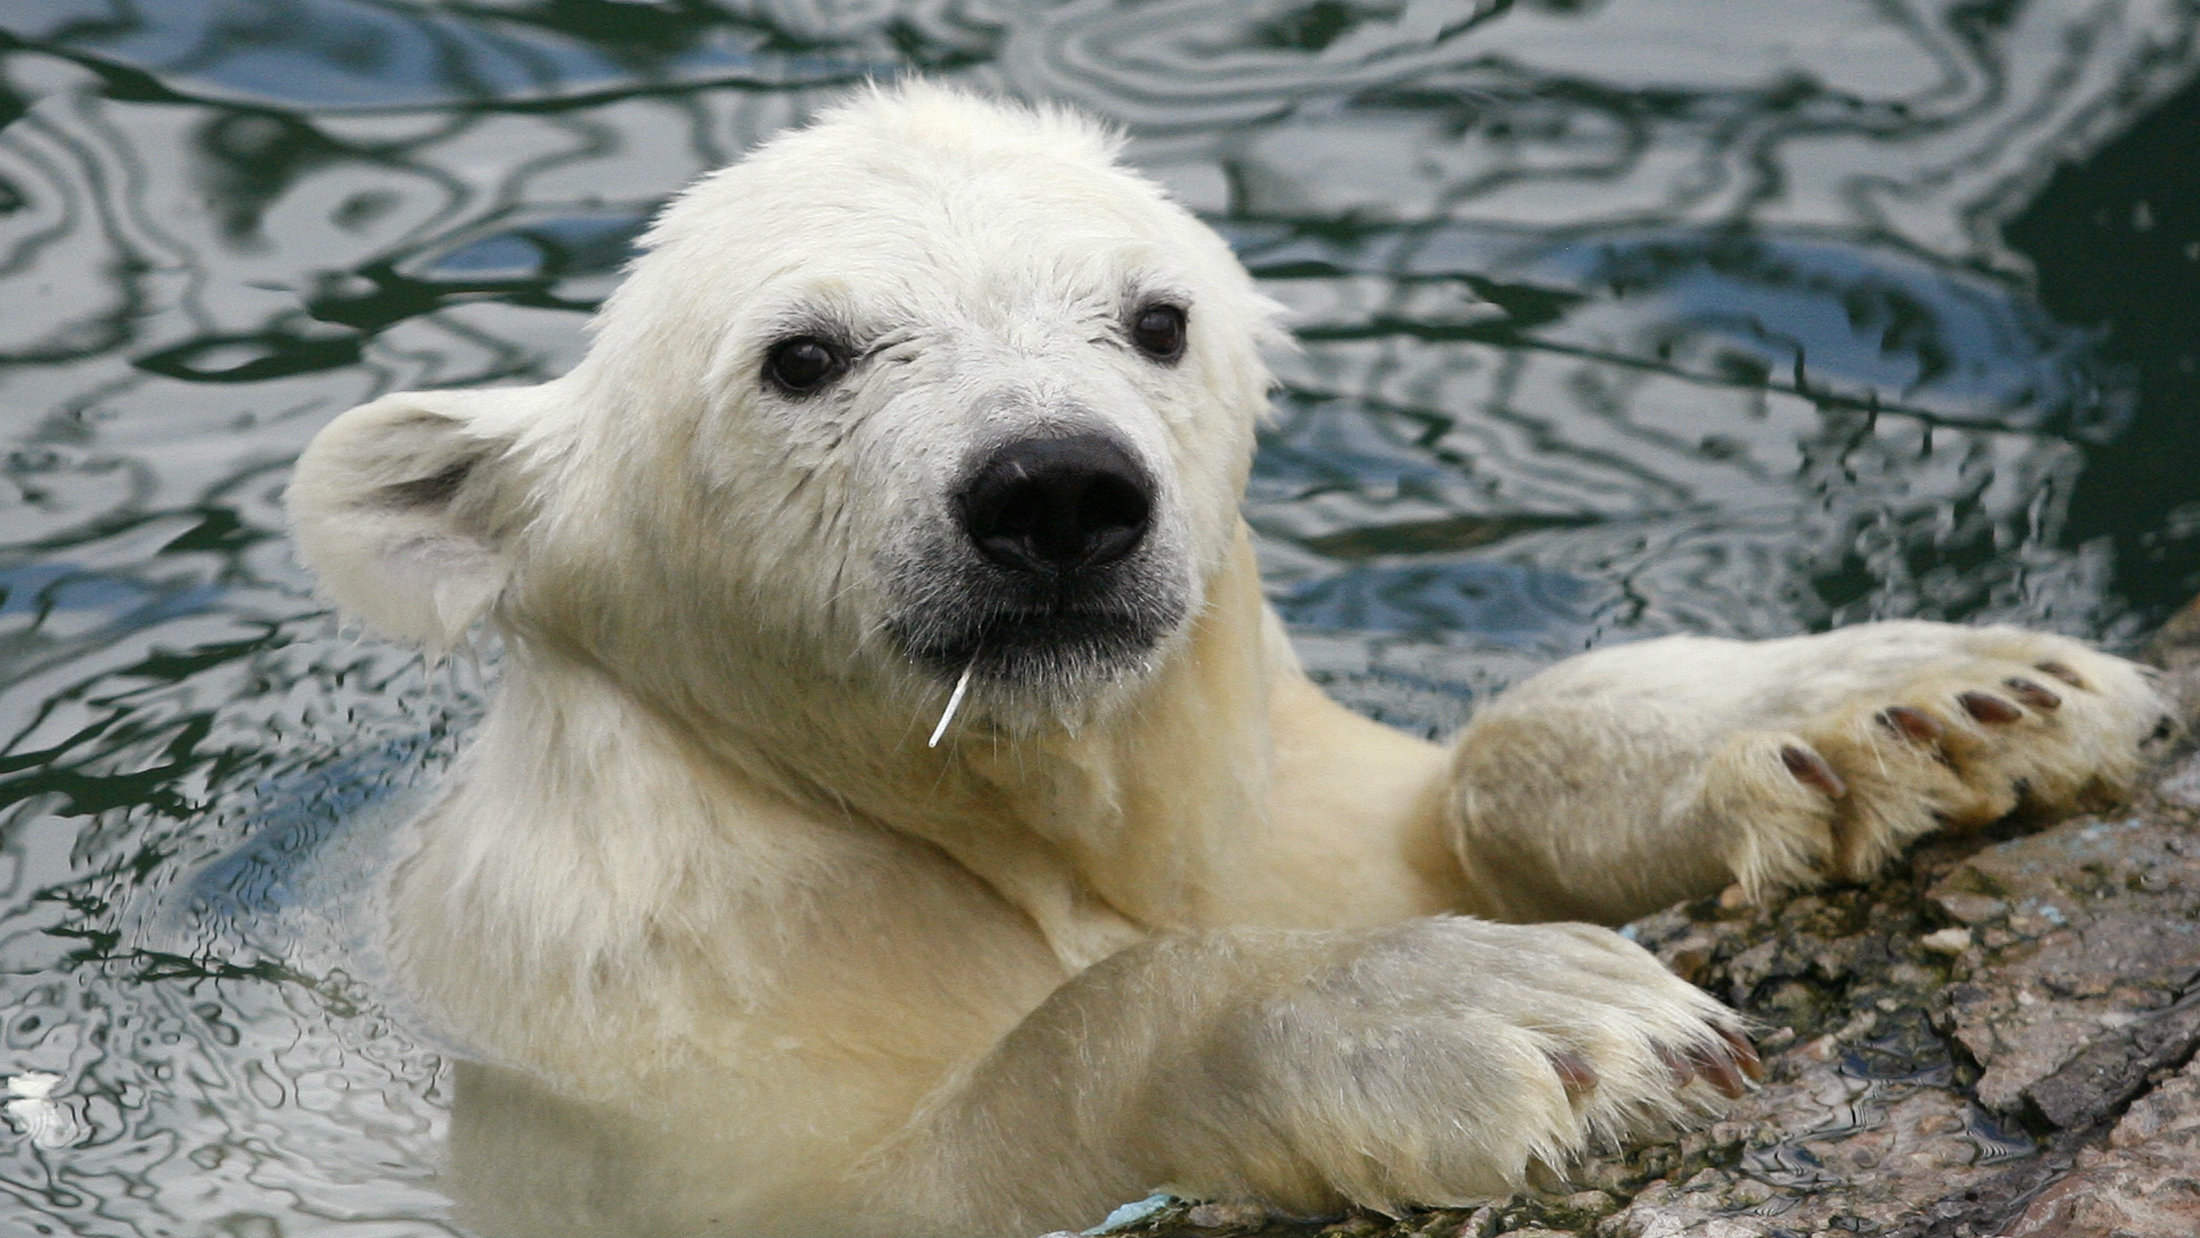 A six-month-old female polar bear cub cools off in its pool at the Royev Ruchey Zoo in Russia?s Siberian city of Krasnoyarsk, July 29, 2010. Two female wild polar bear cubs were found in Russia's Taimyr Peninsula on the coast of the Arctic Ocean in early May and were later housed in Krasnoyarsk zoo. REUTERS/Ilya Naymushin (RUSSIA - Tags: ANIMALS ENVIRONMENT)